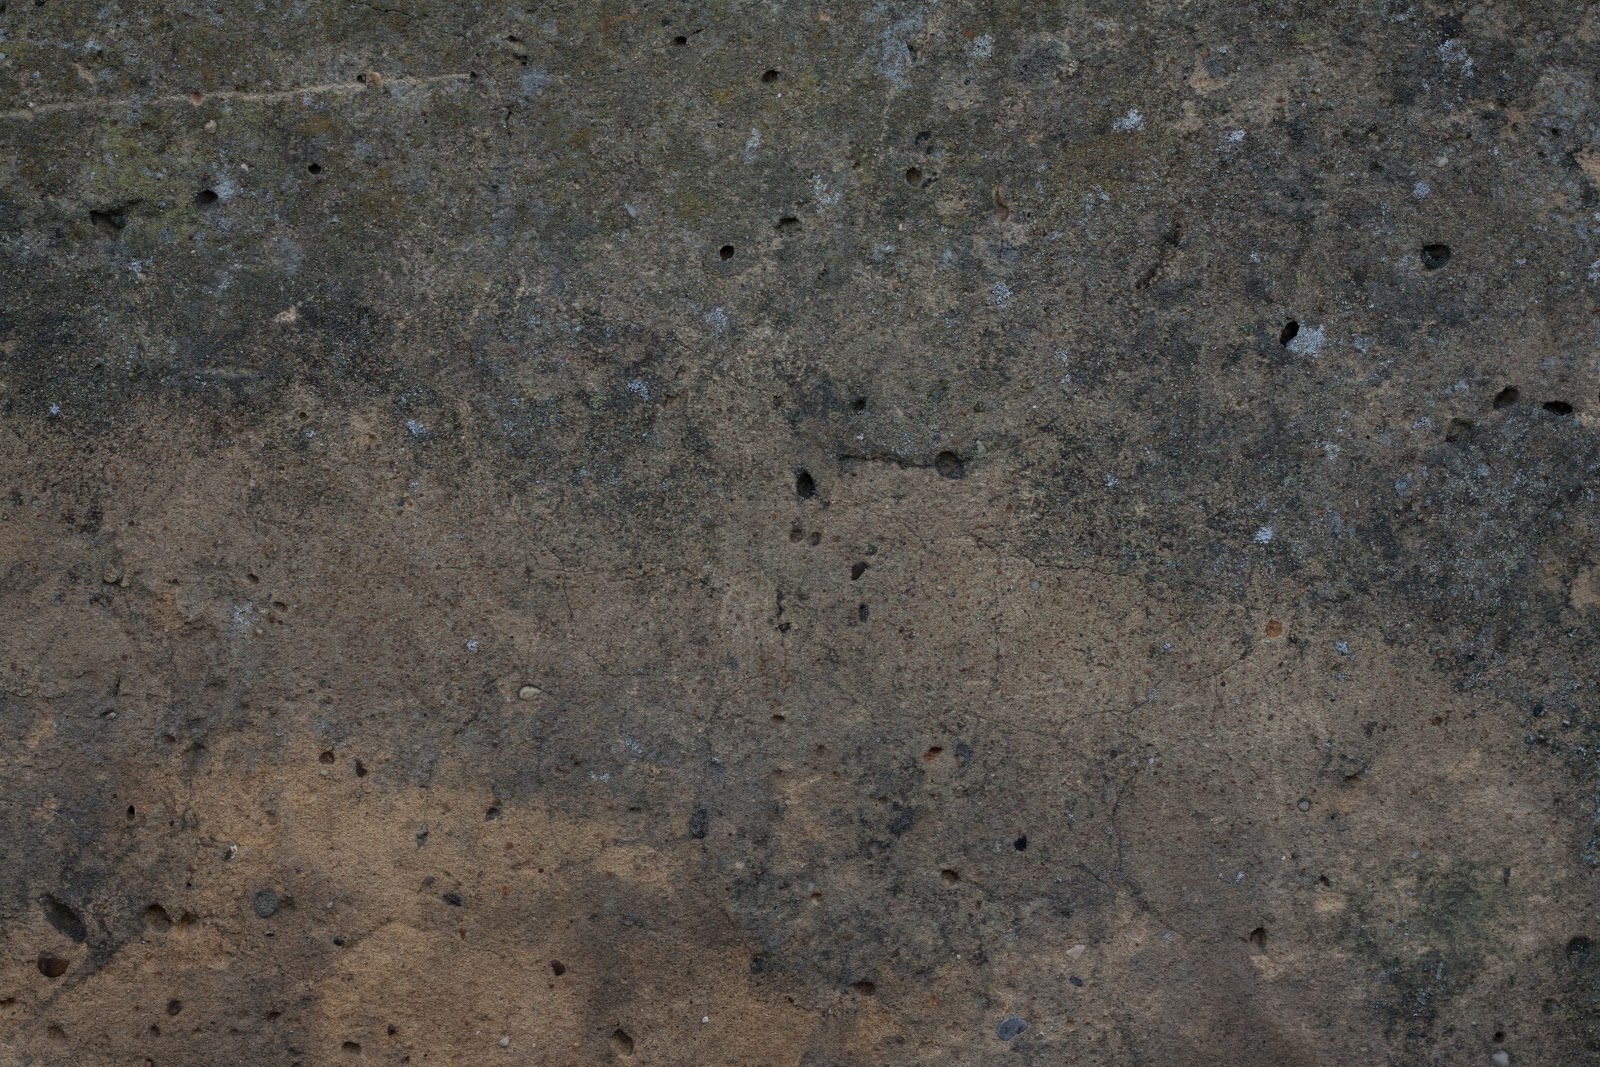 Dirty Stone Wall 4752x3168